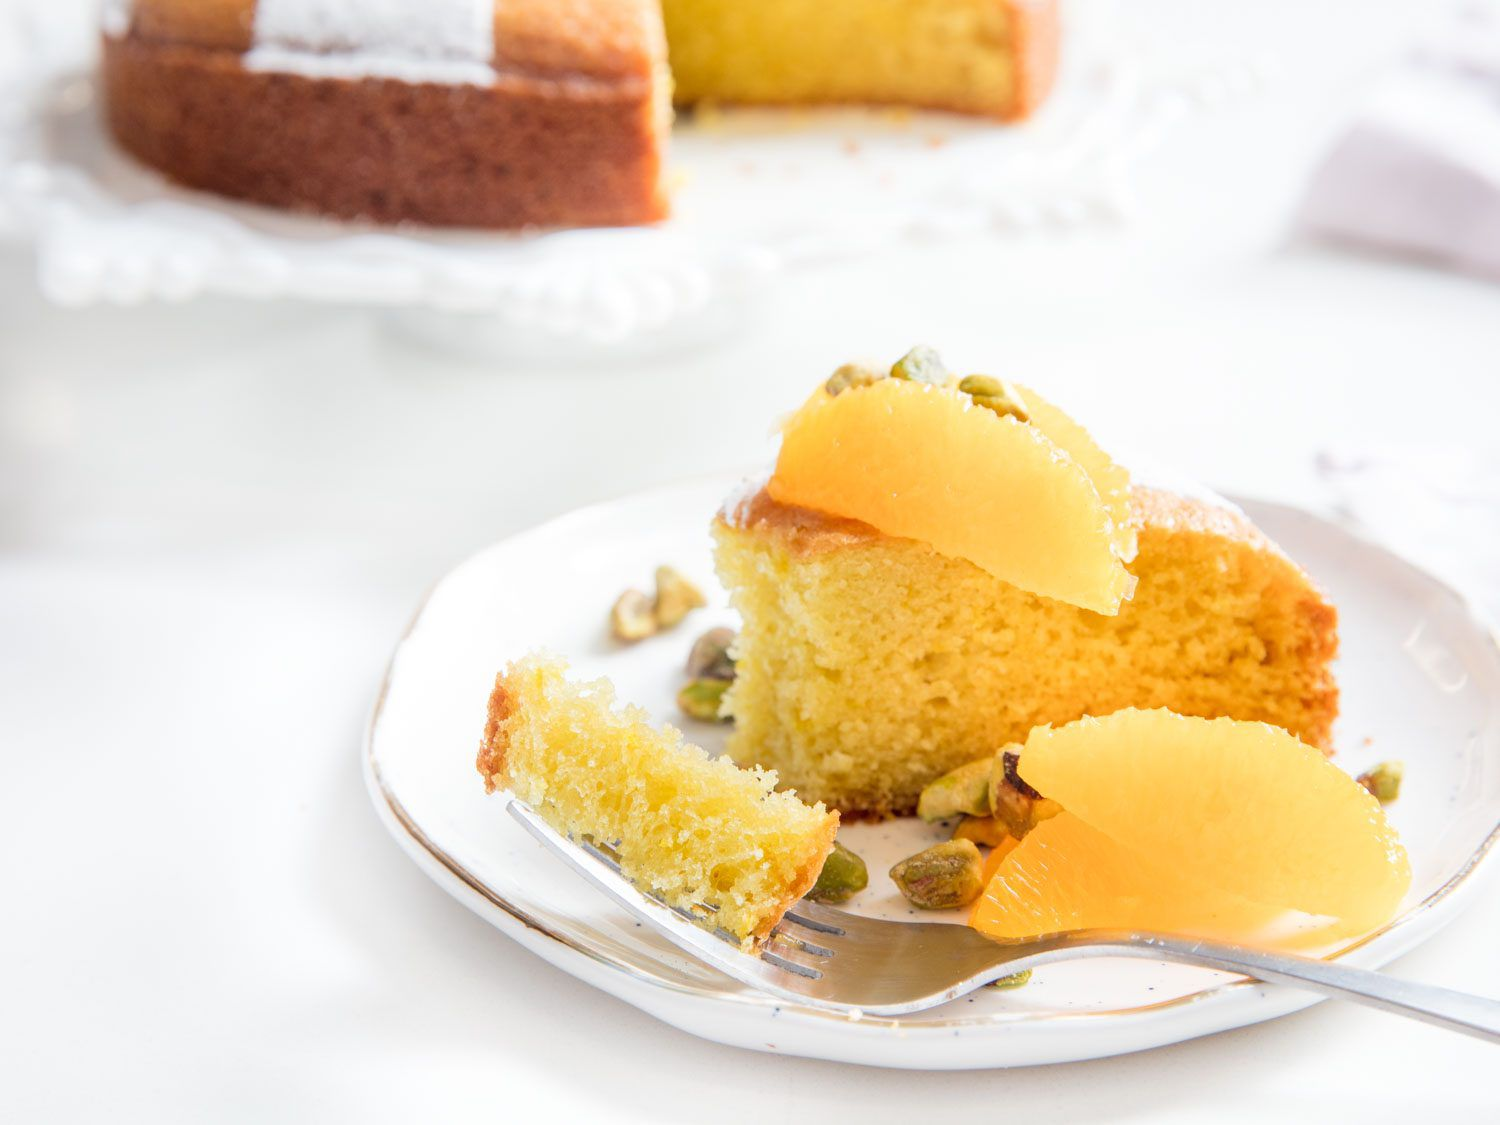 a bite of cake on a fork